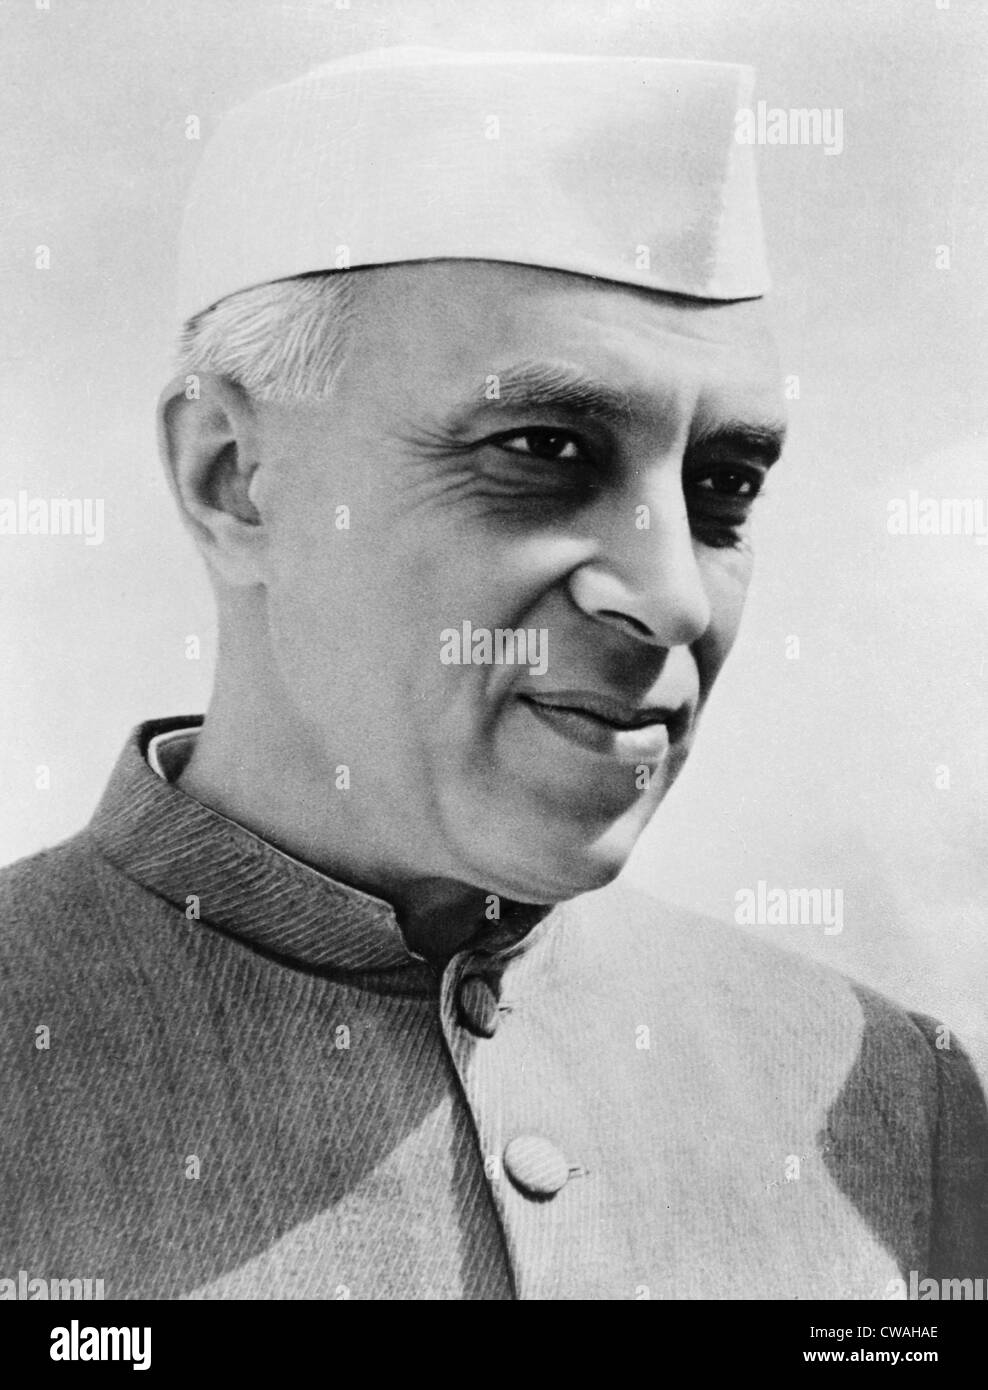 my favourite leader jawaharlal nehru Jawaharlal nehru was the first prime minister of india  with time, nehru  emerged as a popular and influential nationalist leader, particularly in northern  india.